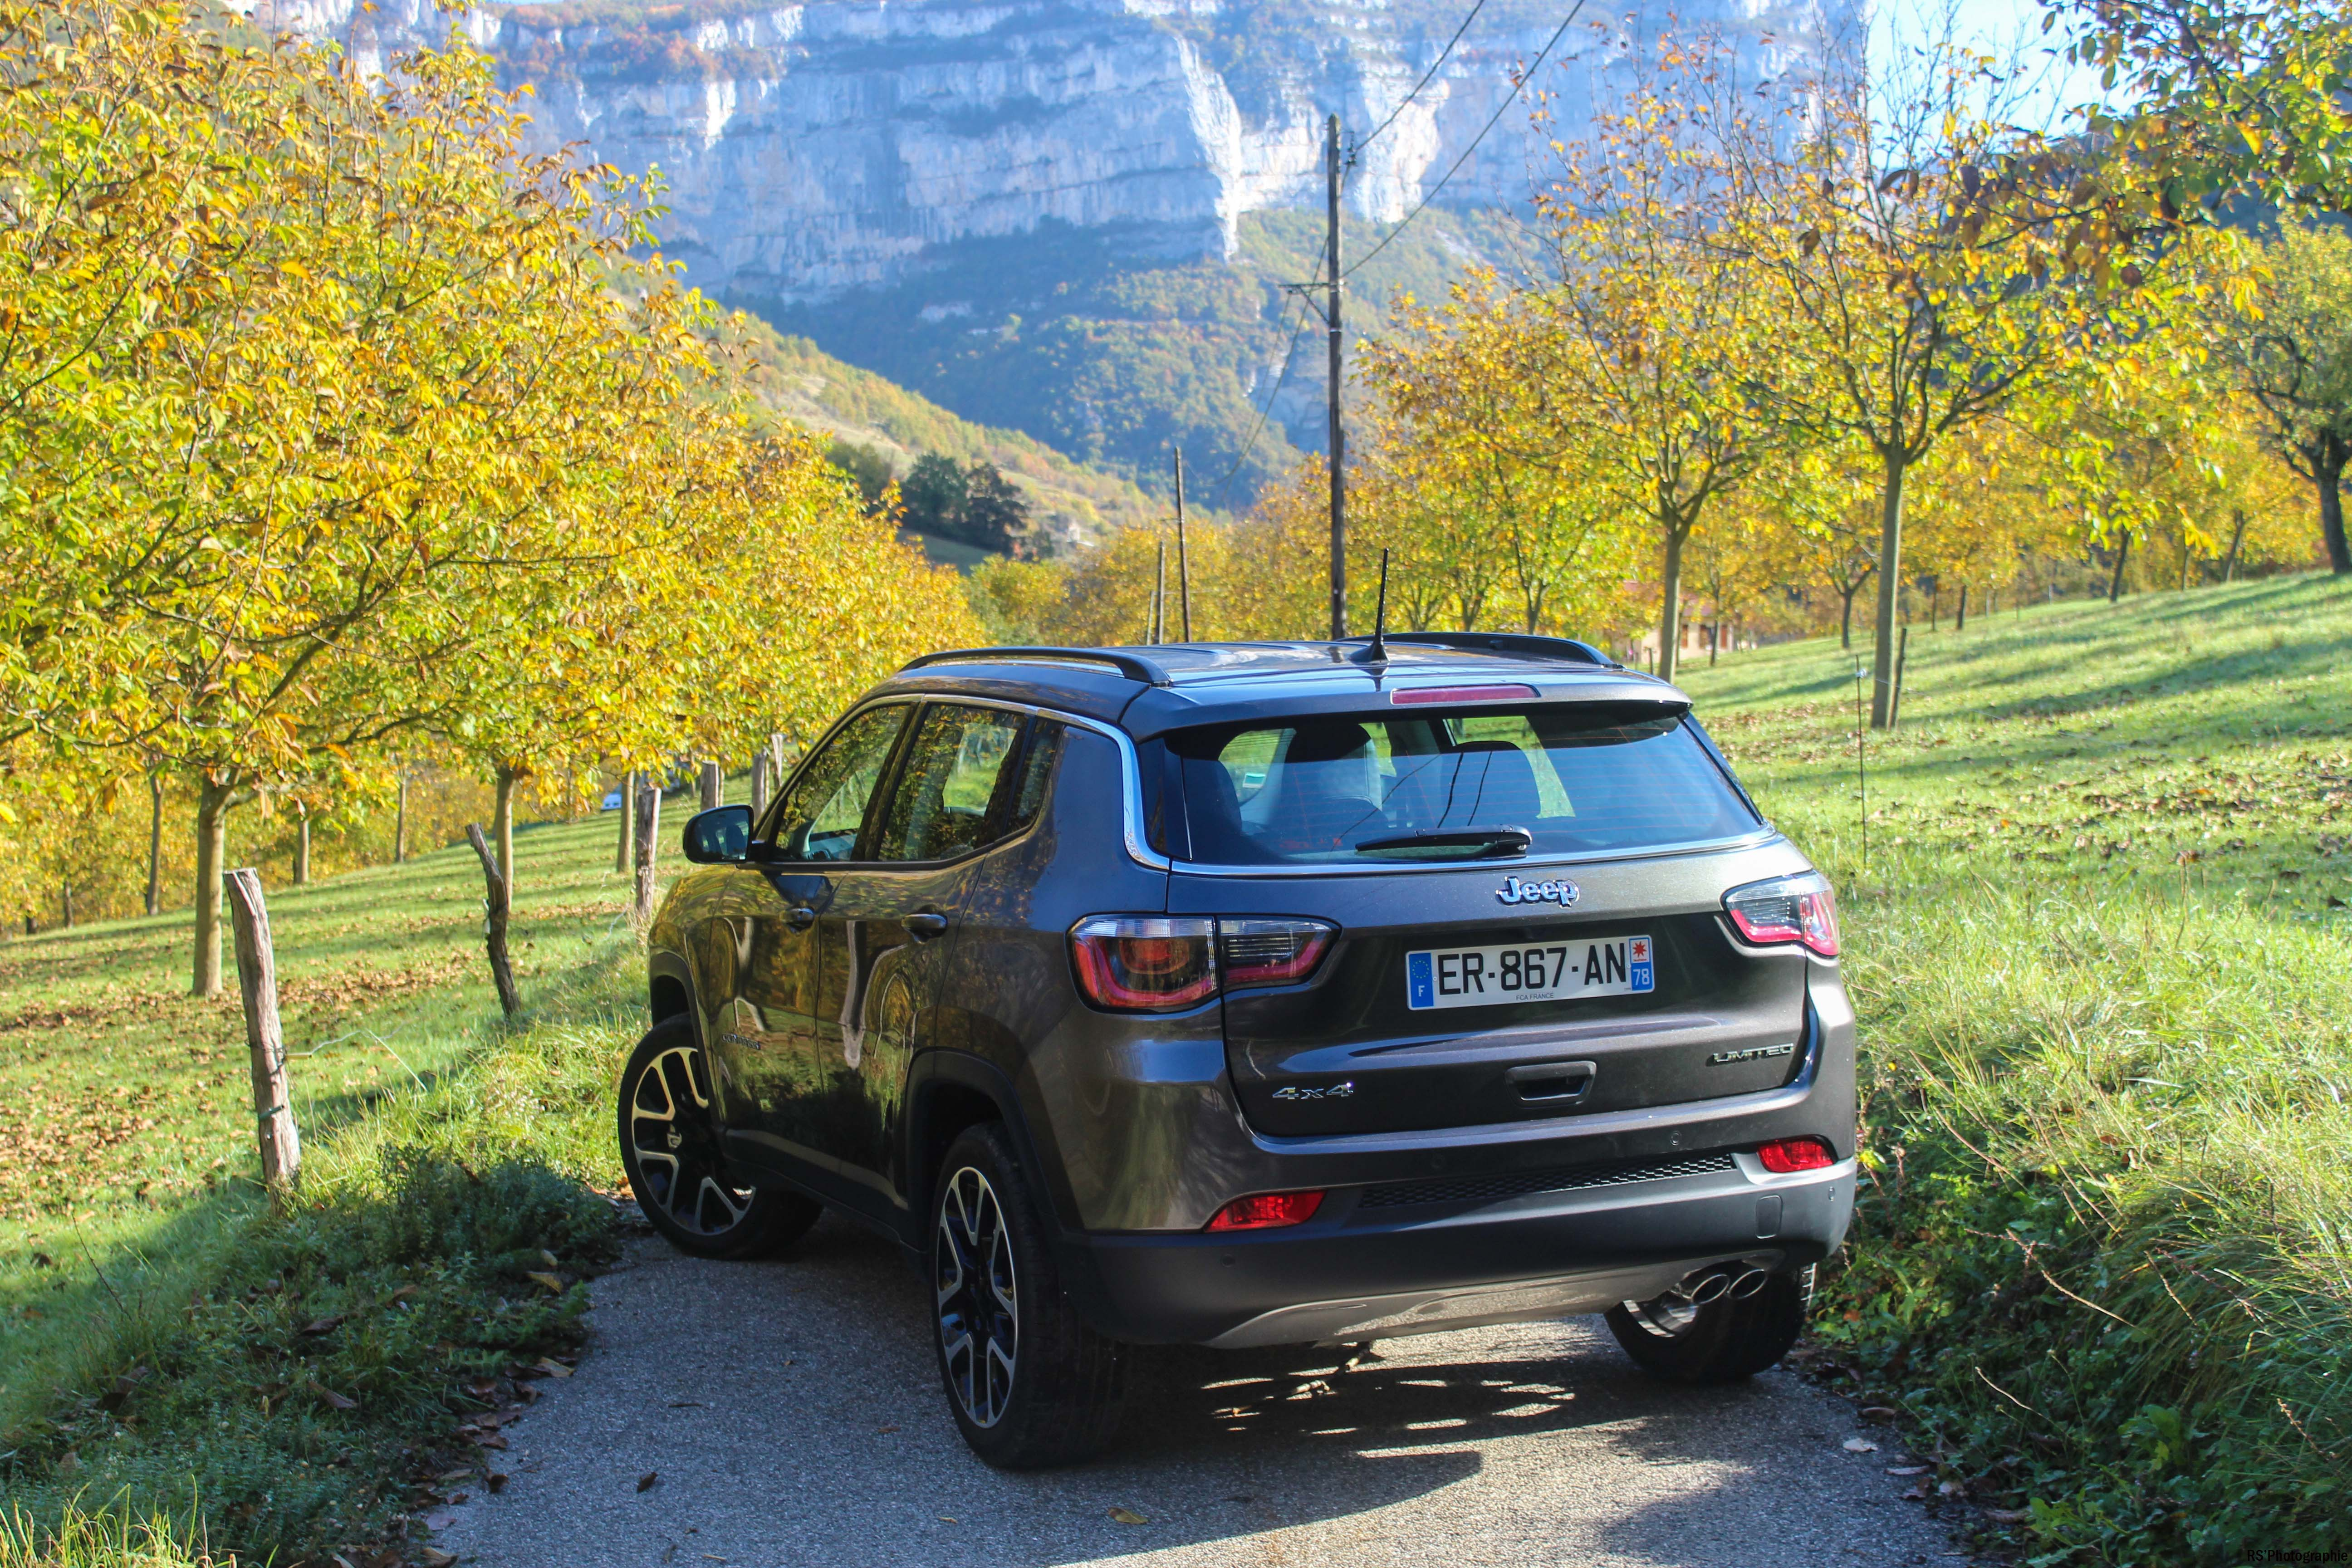 jeepcompass10-jeep-compass-arriere-rear-Arnaud Demasier-RSPhotographie